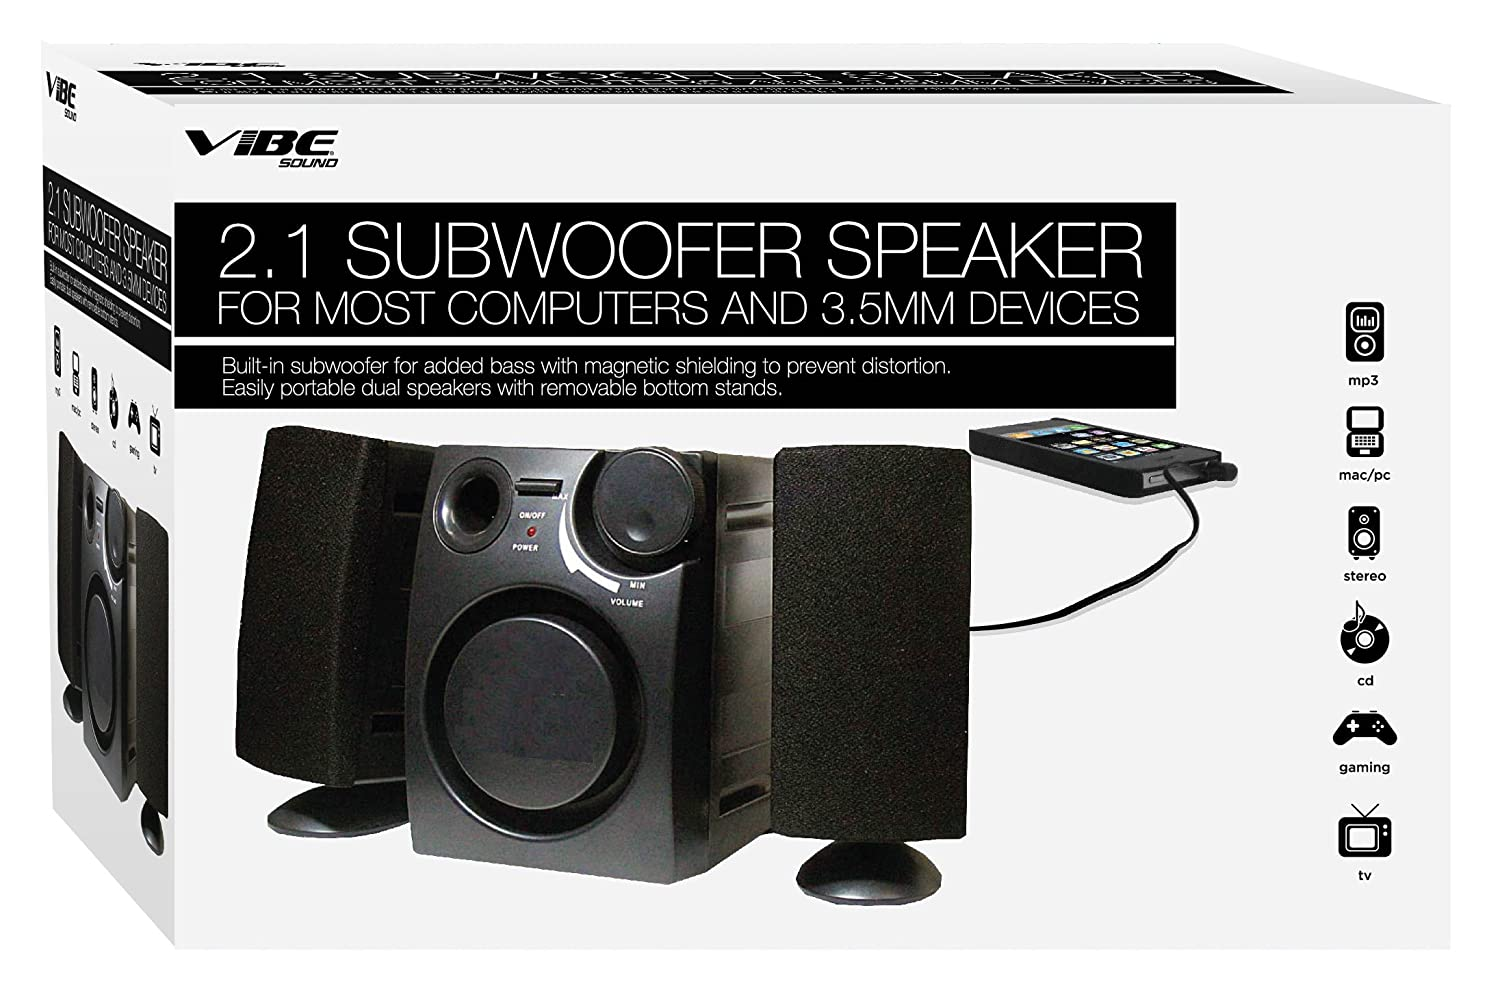 Baby Boomer 600w Dual 8quot Subwoofer Electronicswoot Vibe Vs 521 Sw Speaker System Black Home Audio Theater